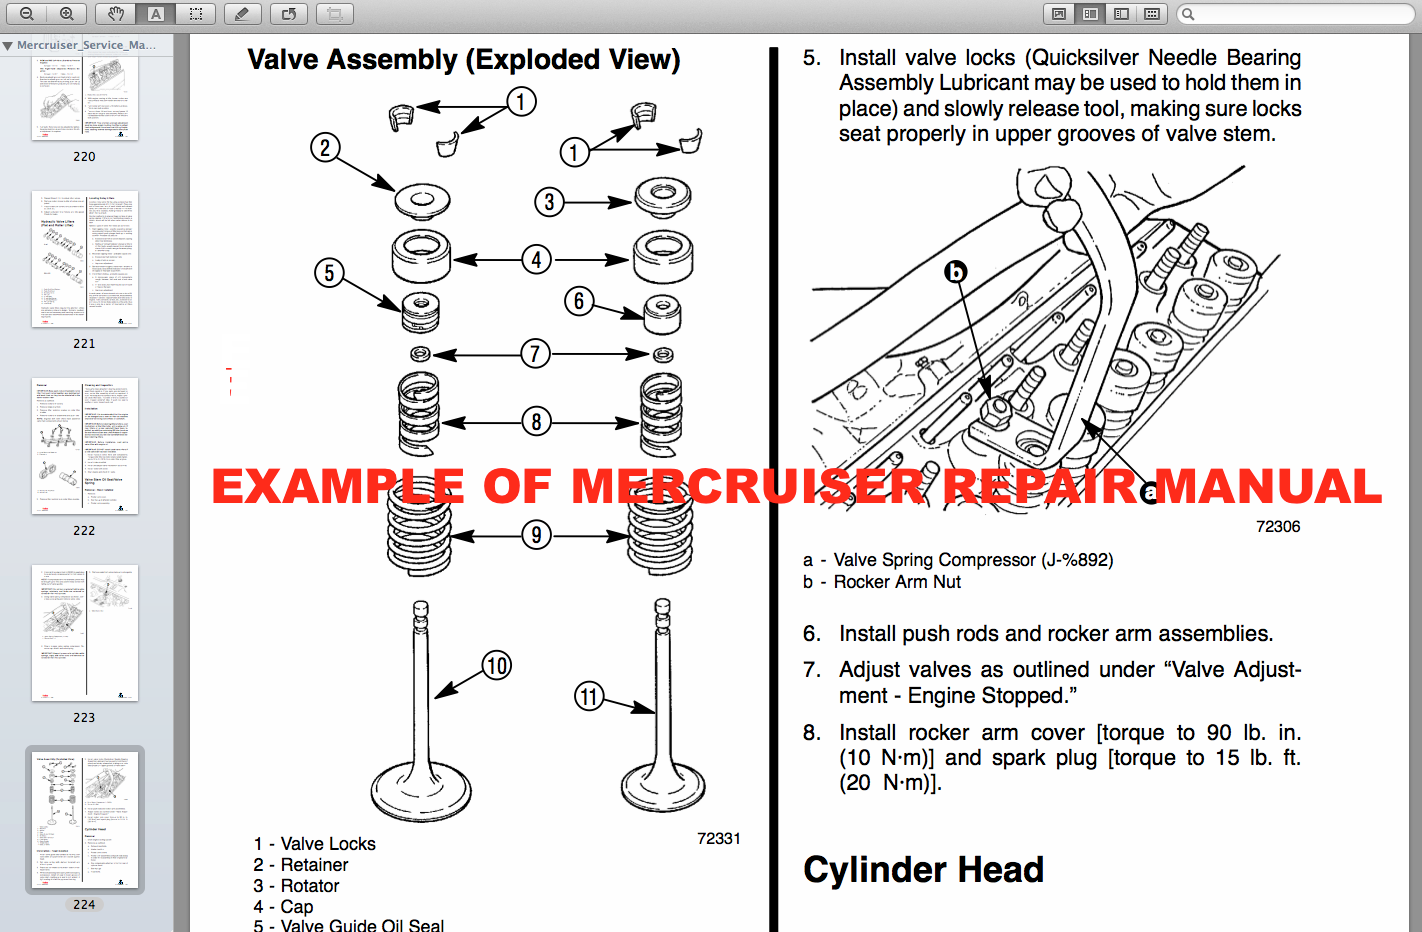 Screen+Shot+2014 01 07+at+7.00.54+PM free repair manual january 2015 1982 260 mercruiser engine wiring diagram at readyjetset.co